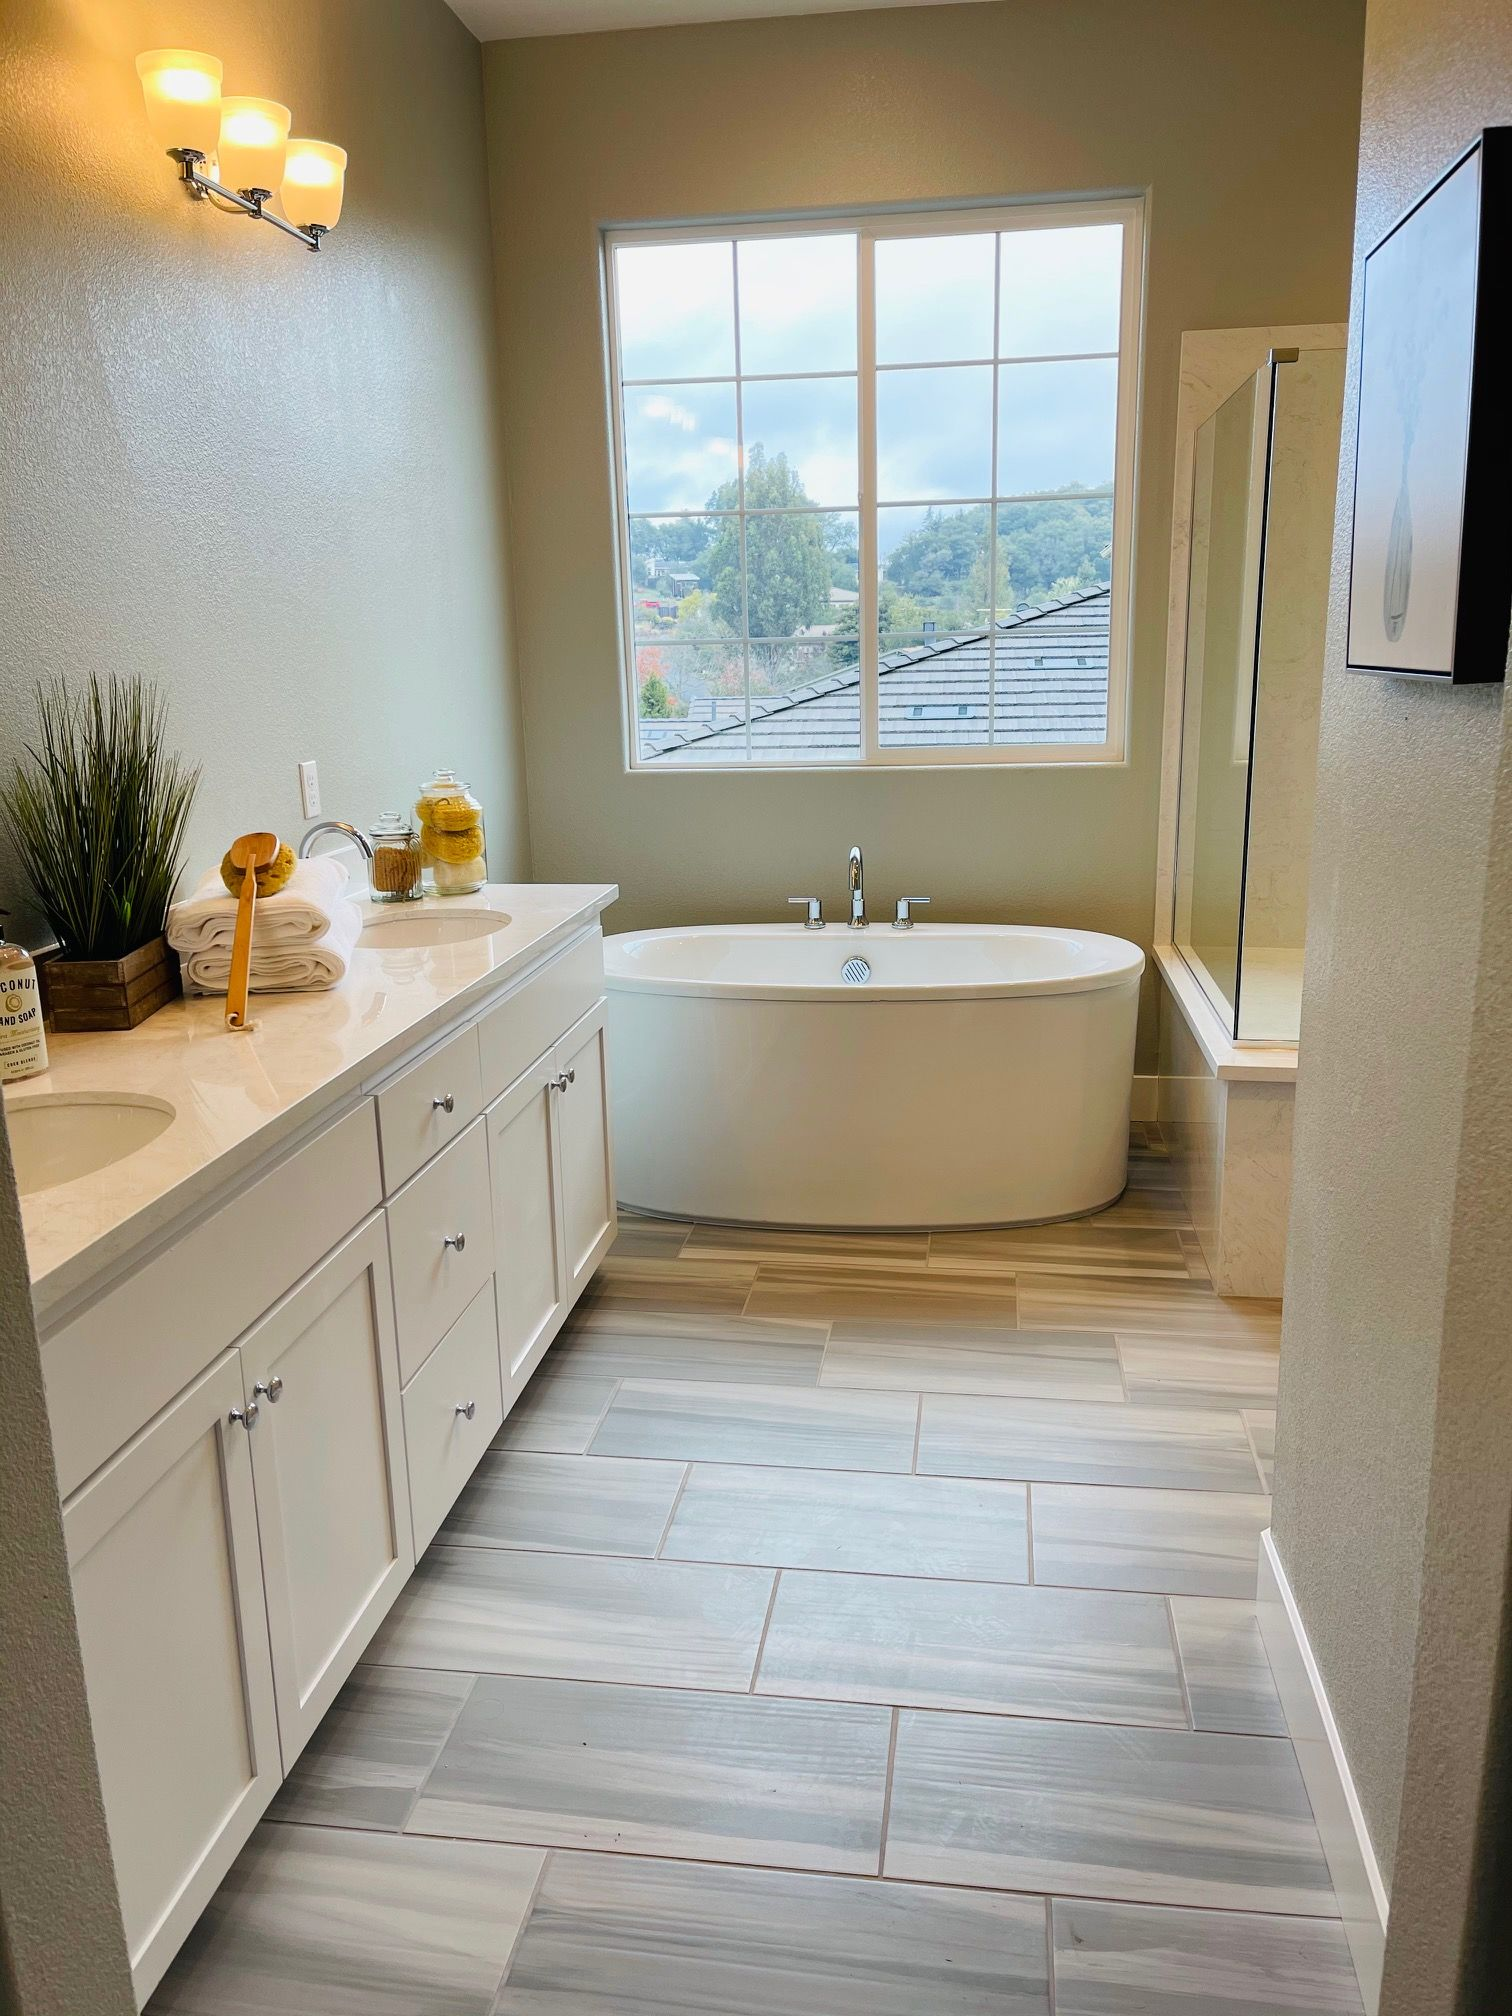 Bathroom featured in the Lot 14 By Lafferty Communities in Santa Rosa, CA